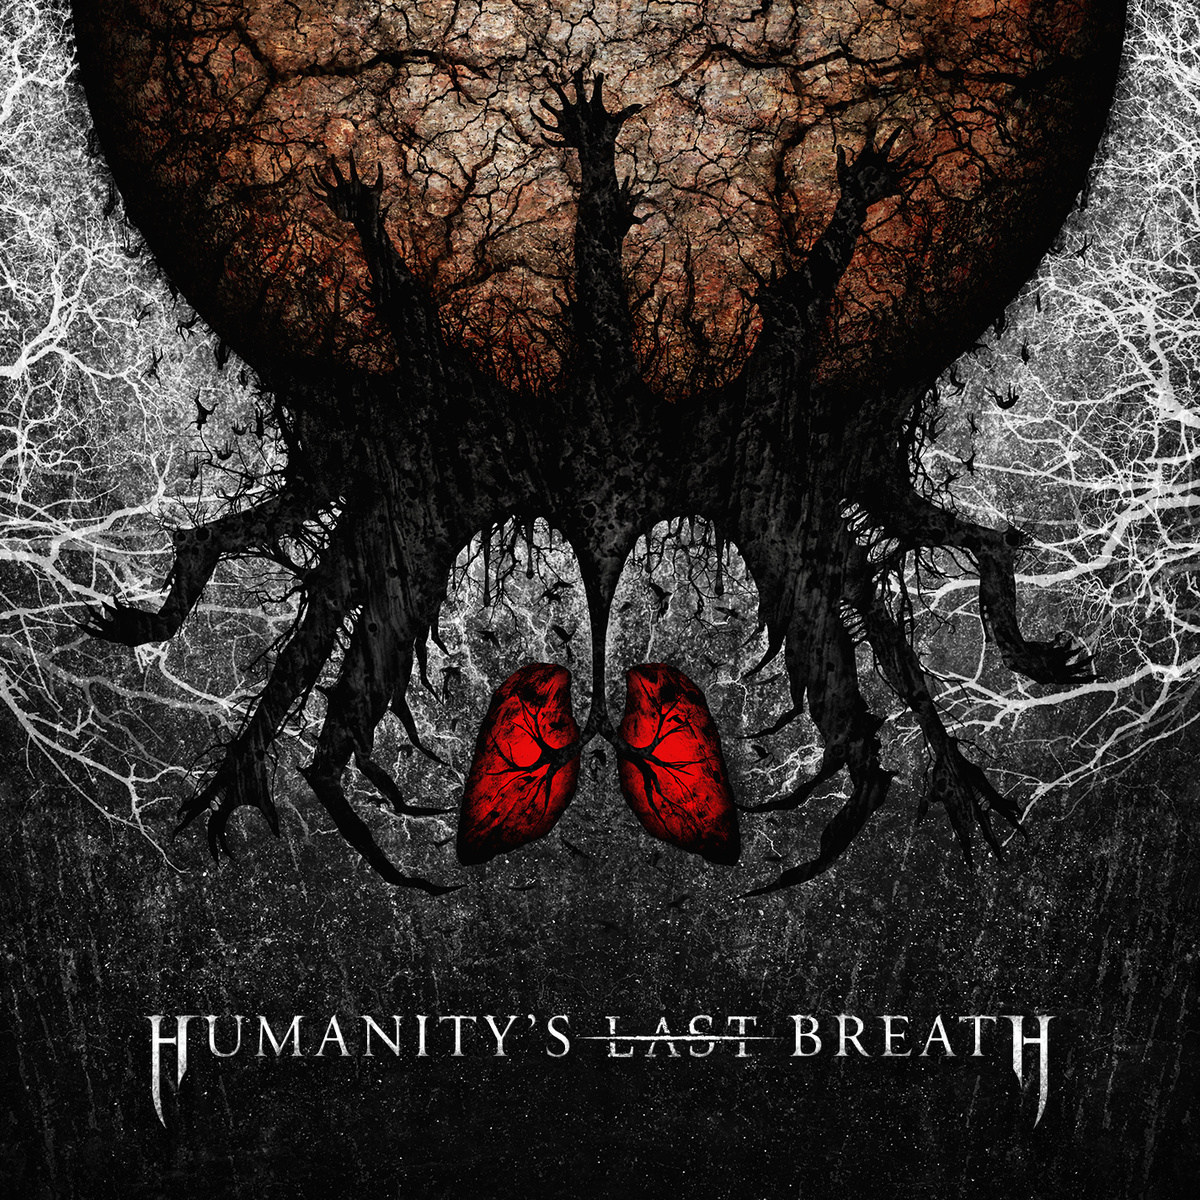 Humanity's Last Breath - Humanity's Last Breath (2013)